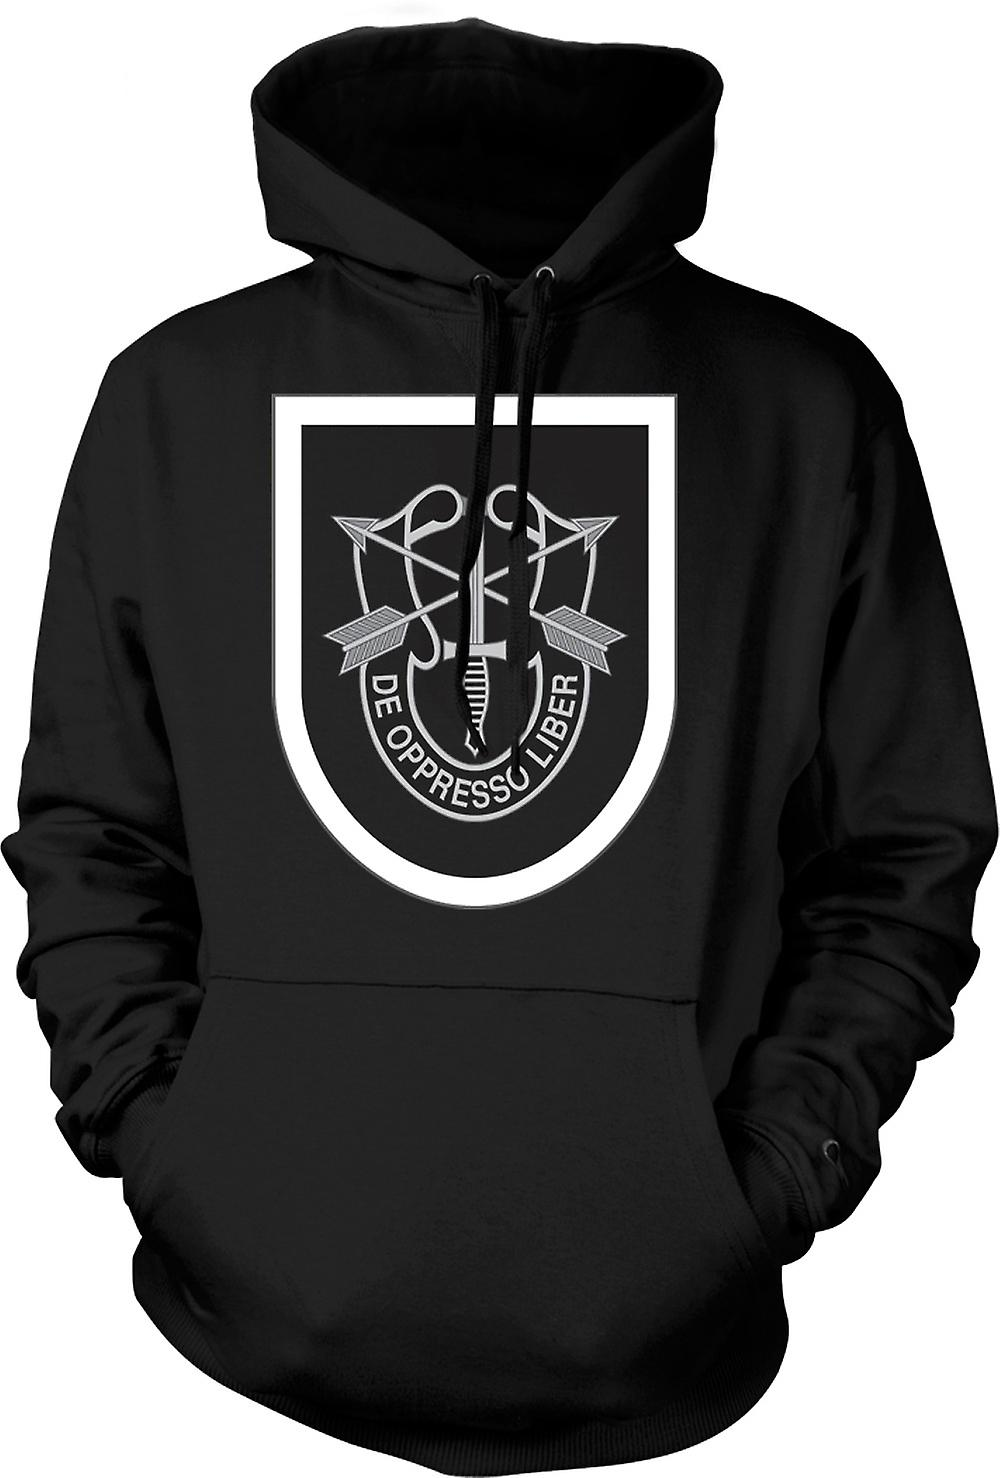 Kids Hoodie - US Special Forces - De Oppresso Liber